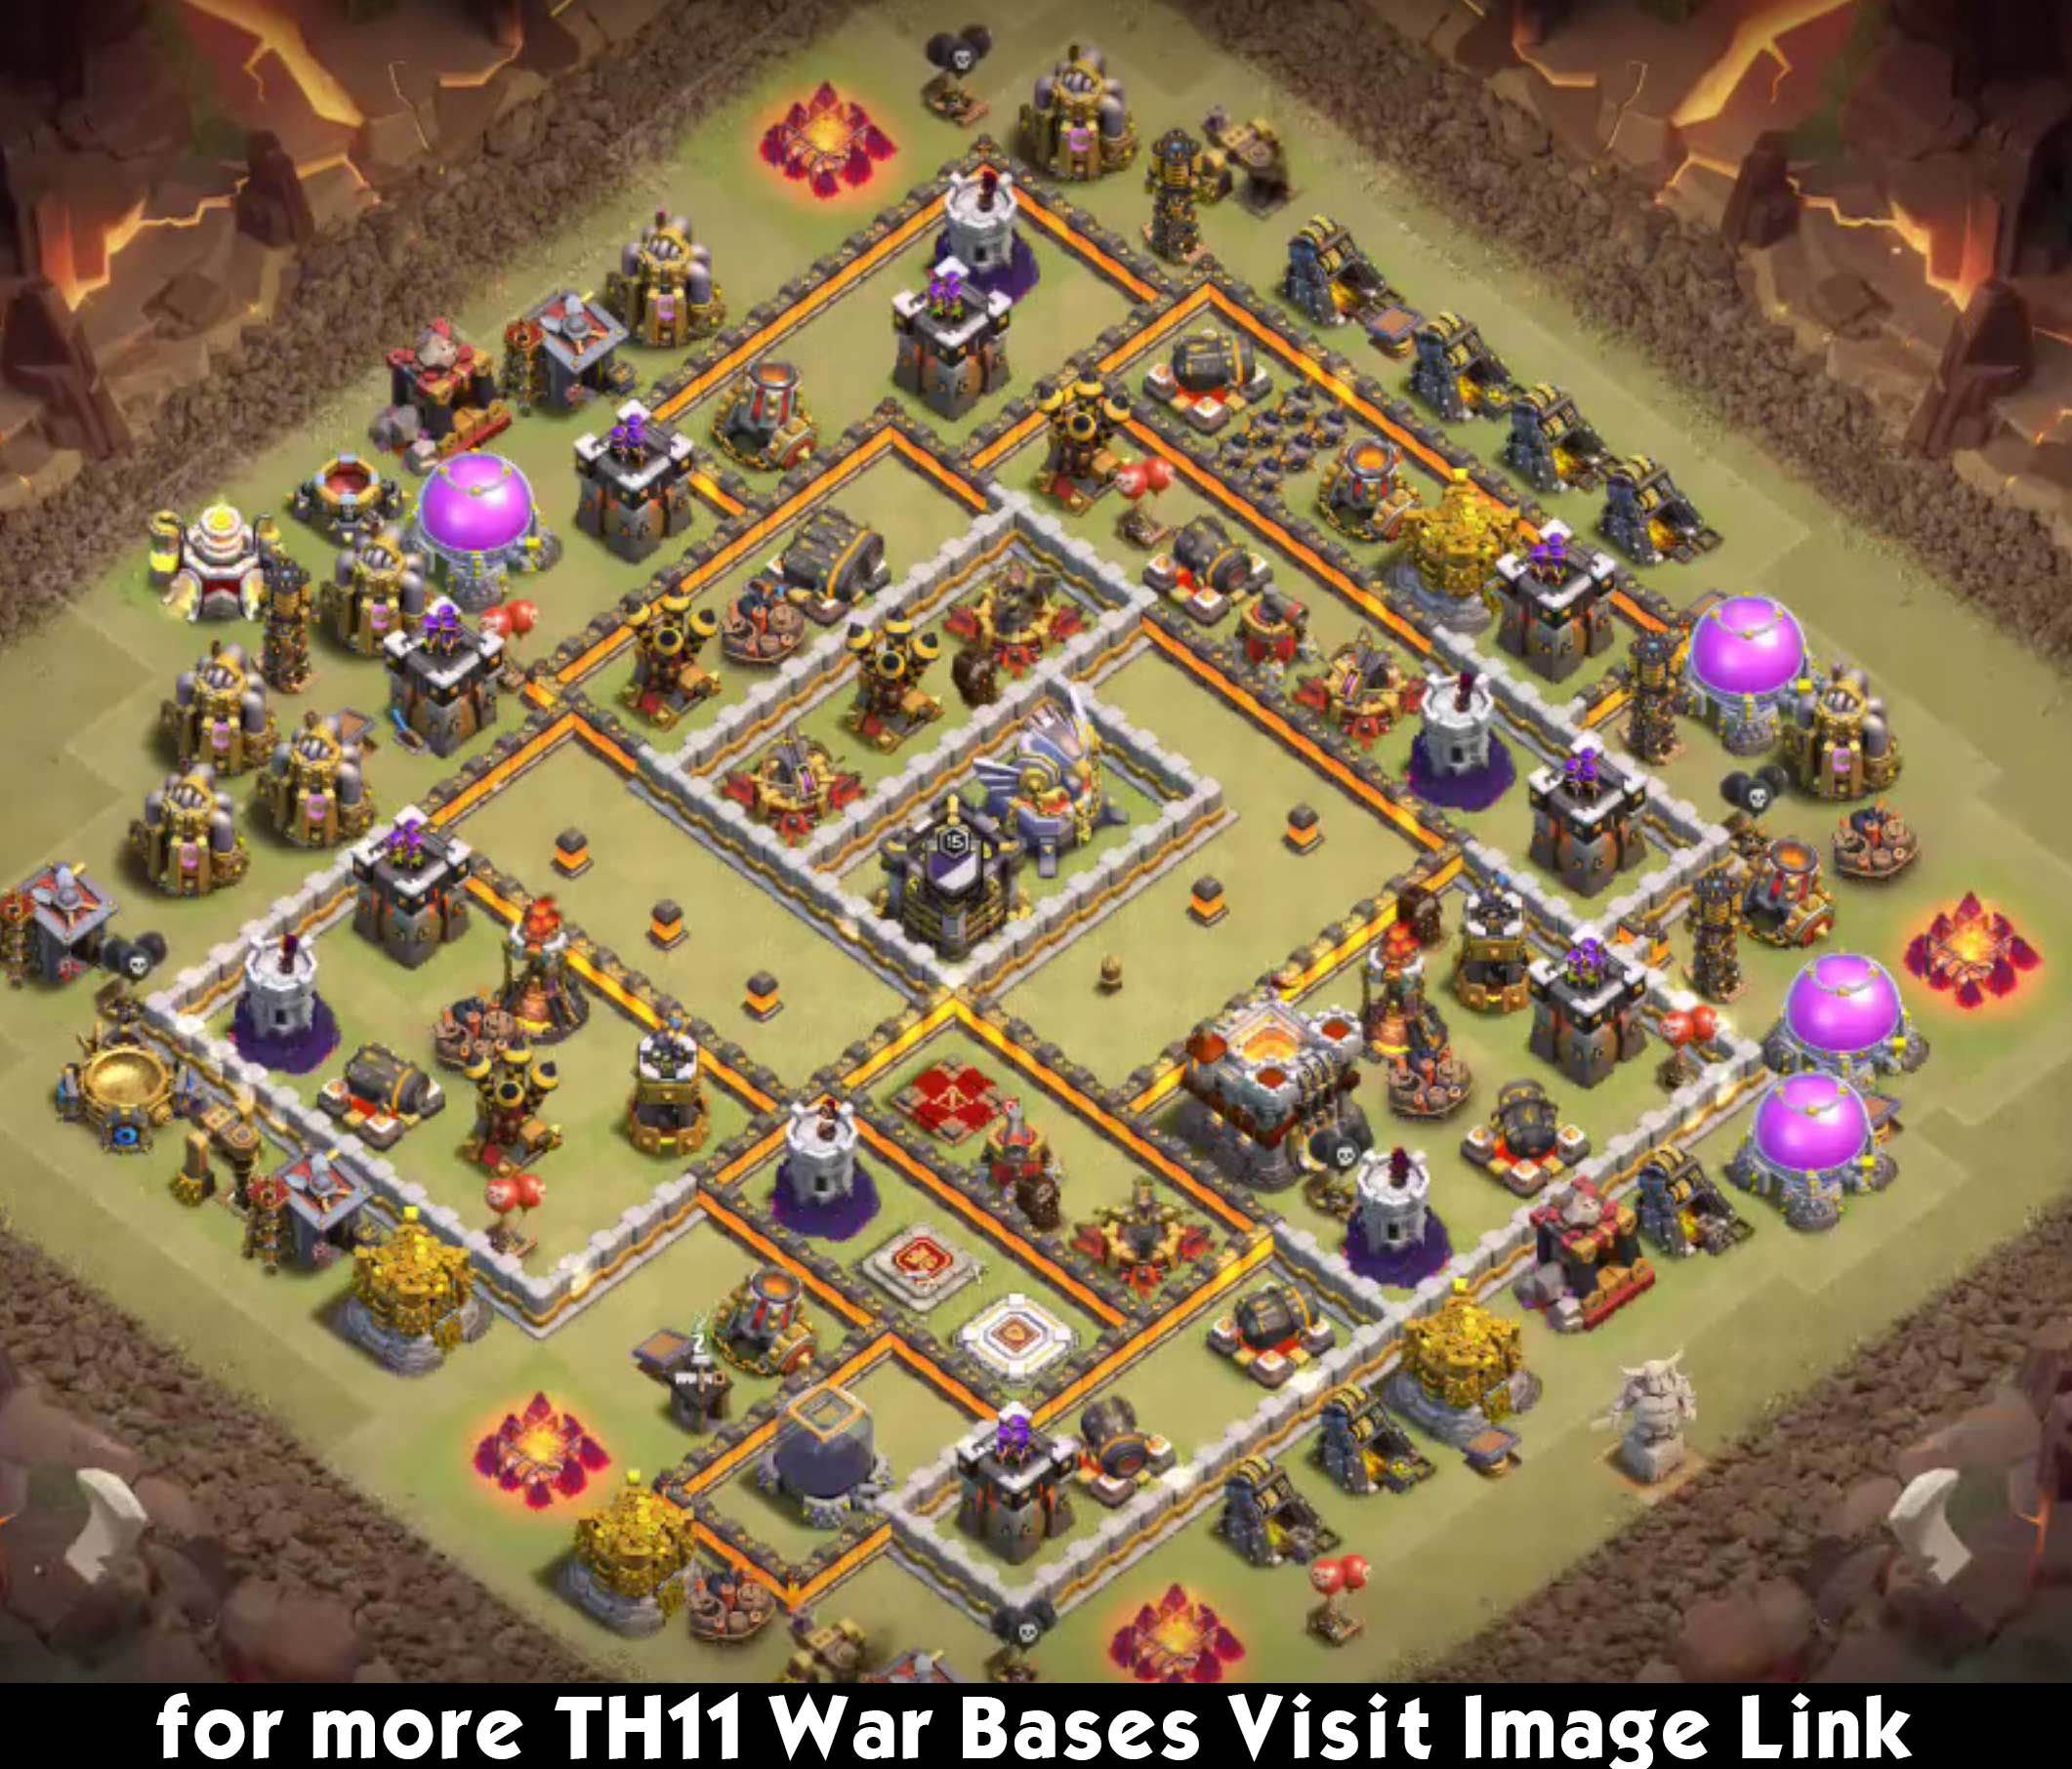 Base Coc Th 11 War 2019 3